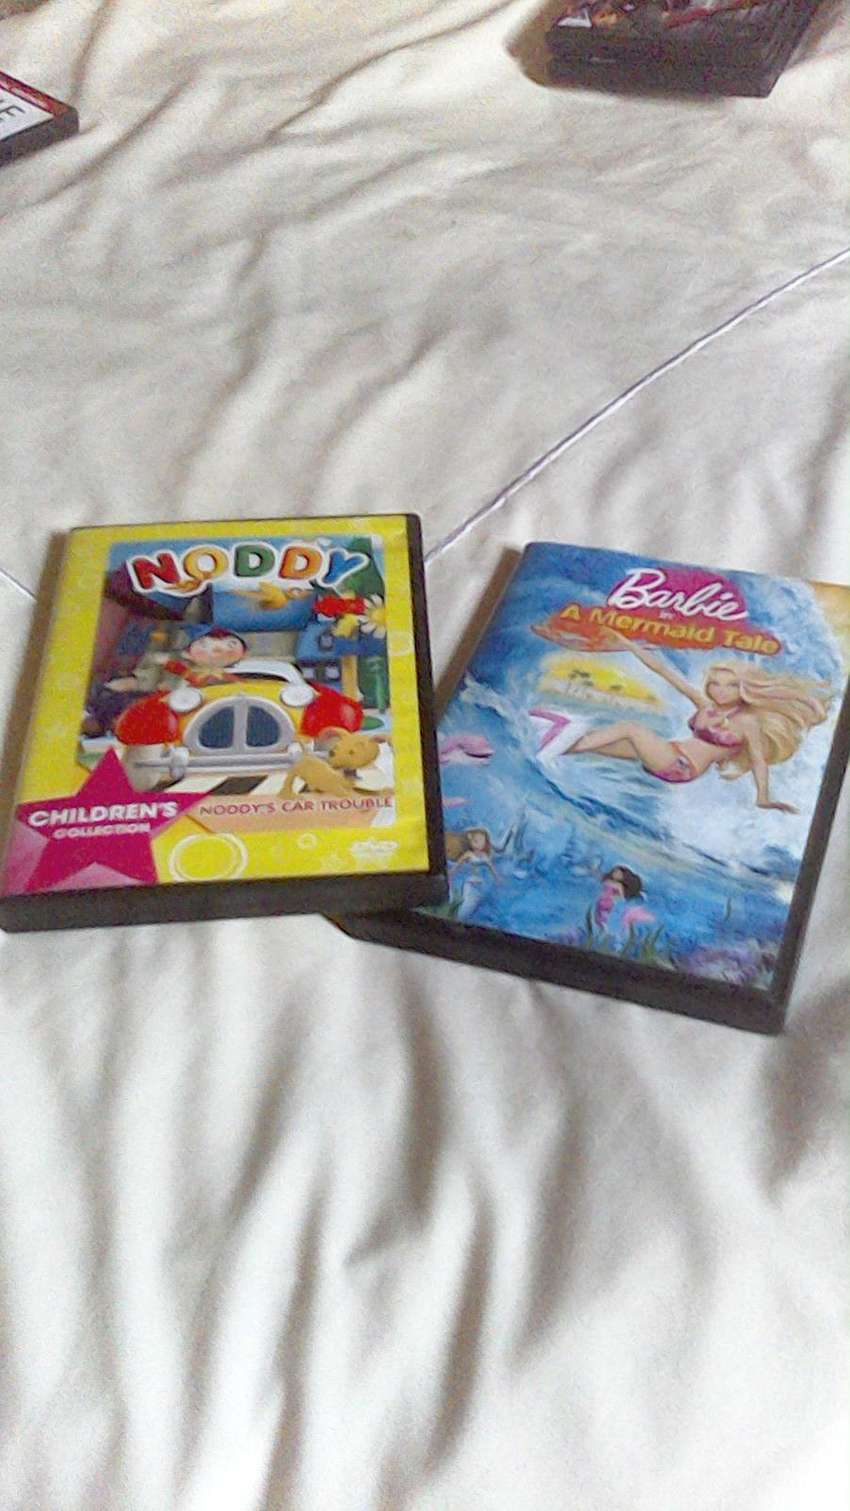 DVD Combo - Noddy and Barbie 0